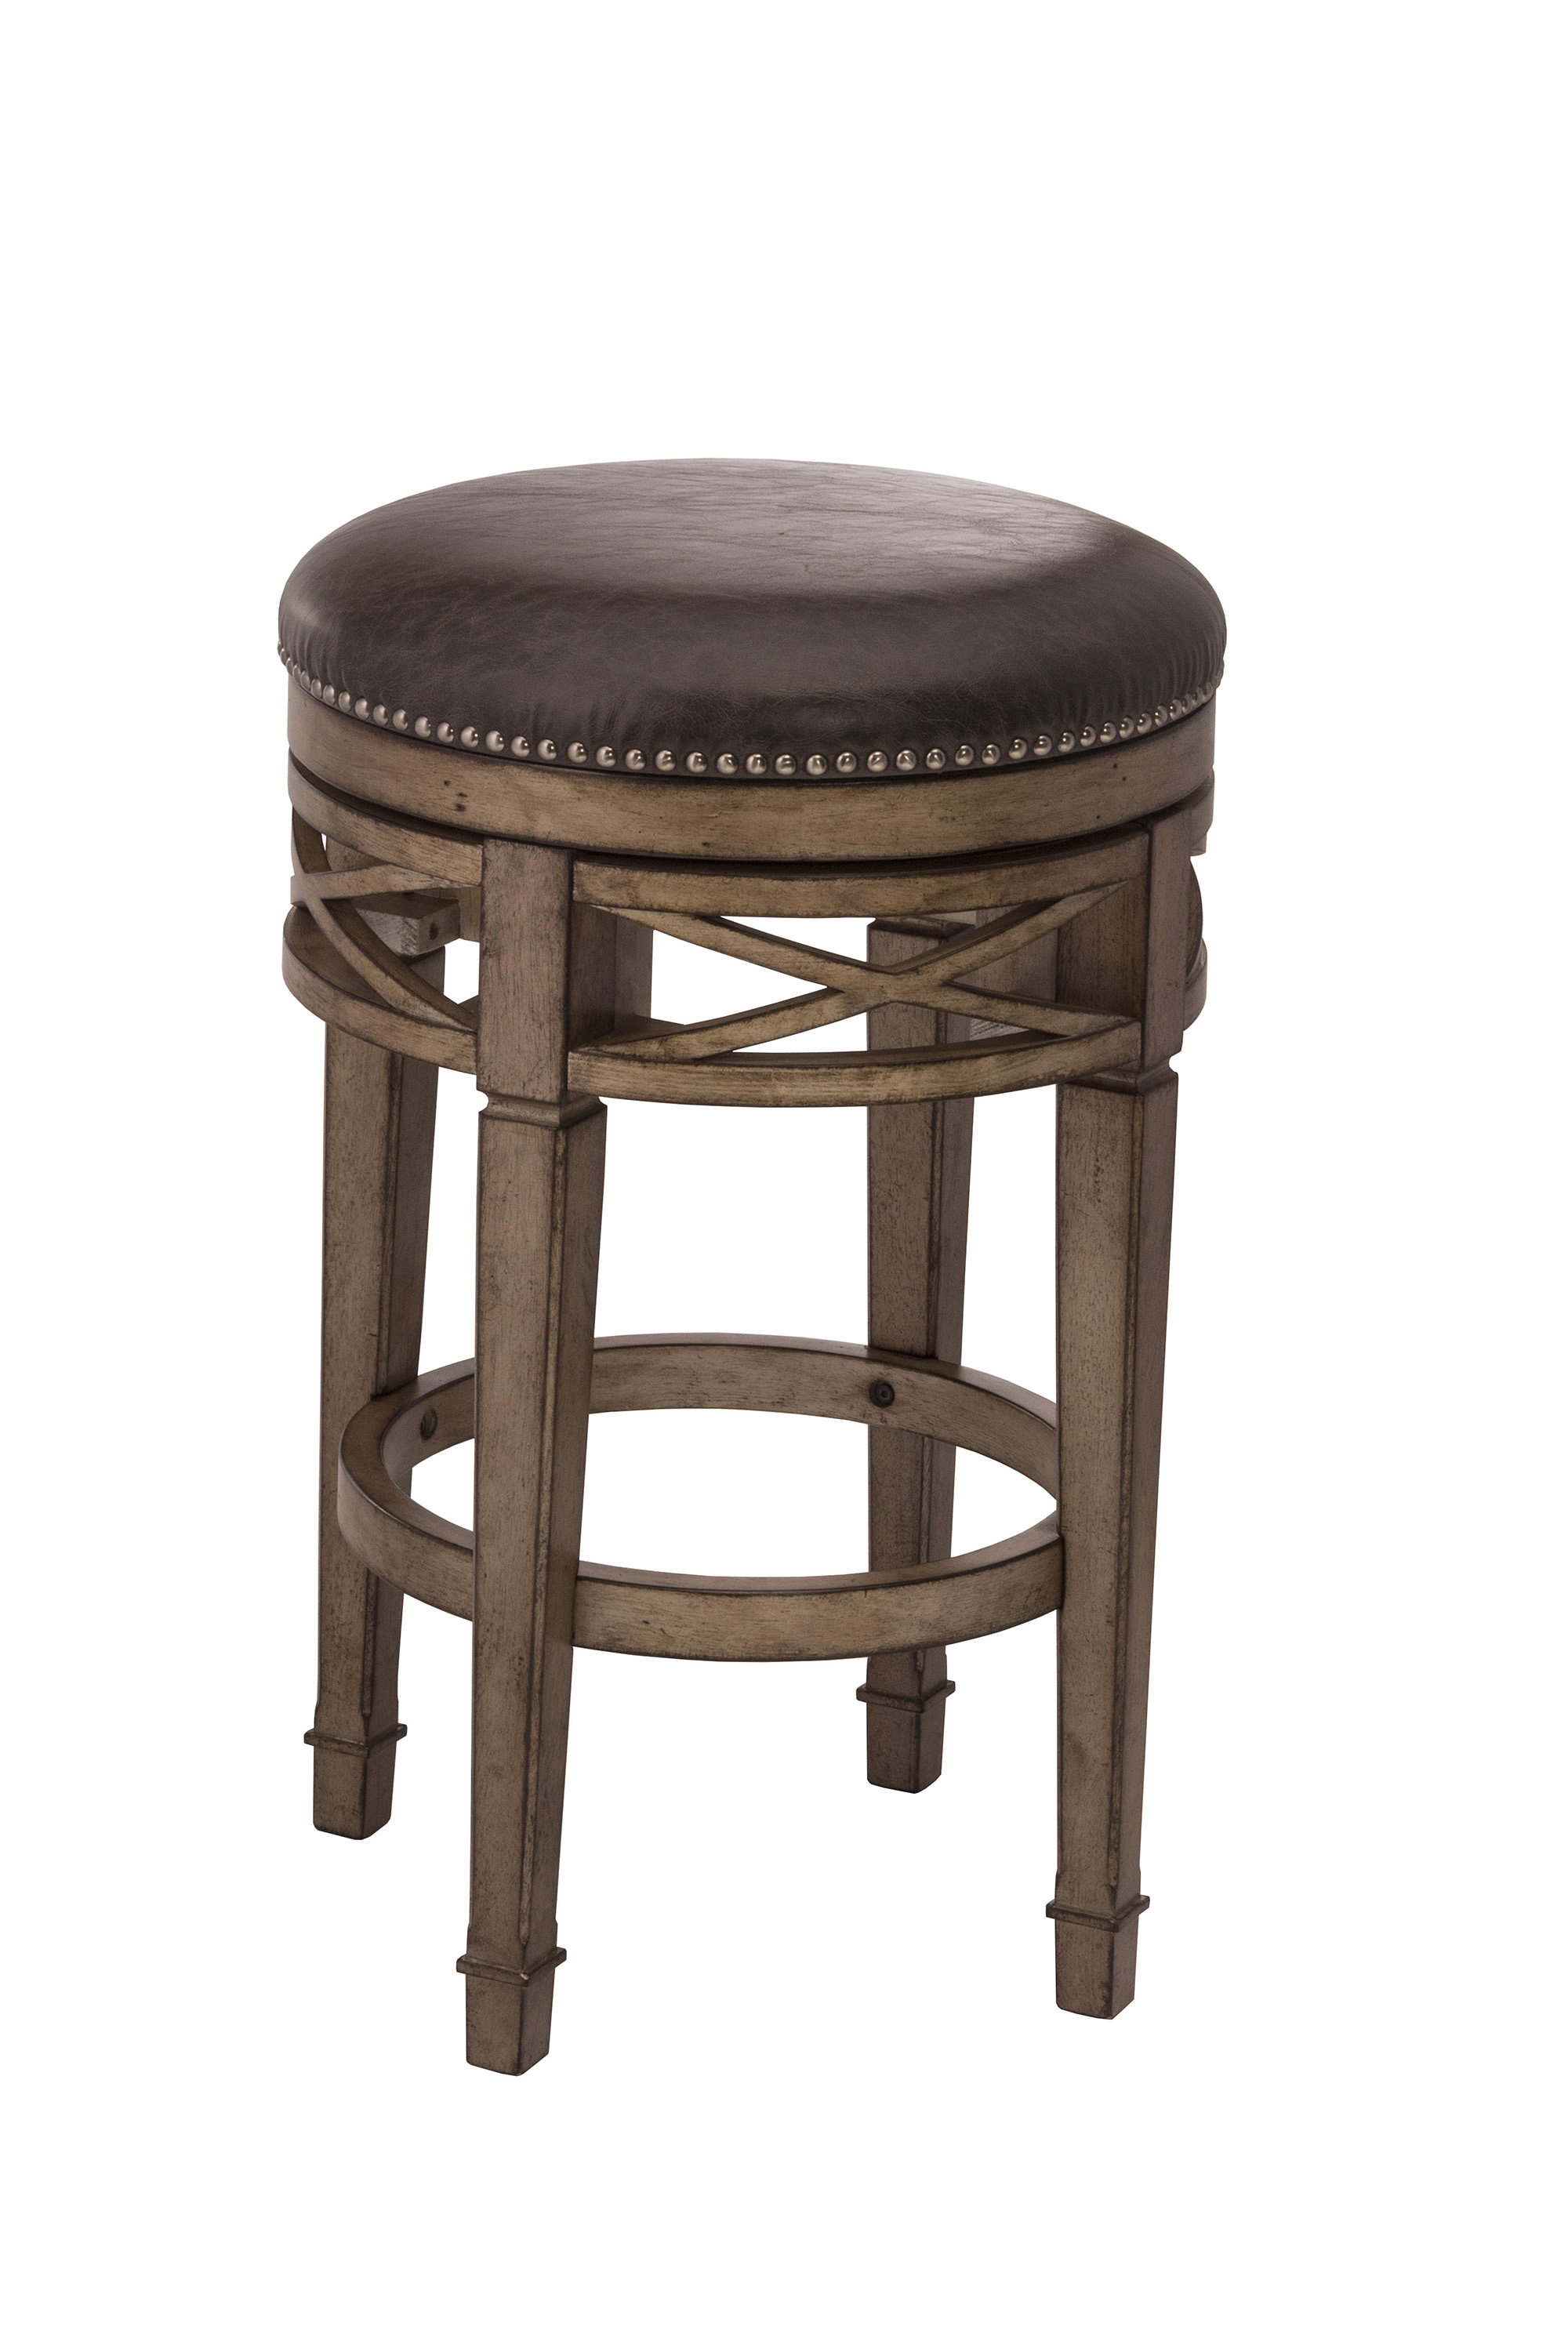 Hillsdale backless bar stools 5609 830 upholstered for Backless bar stools